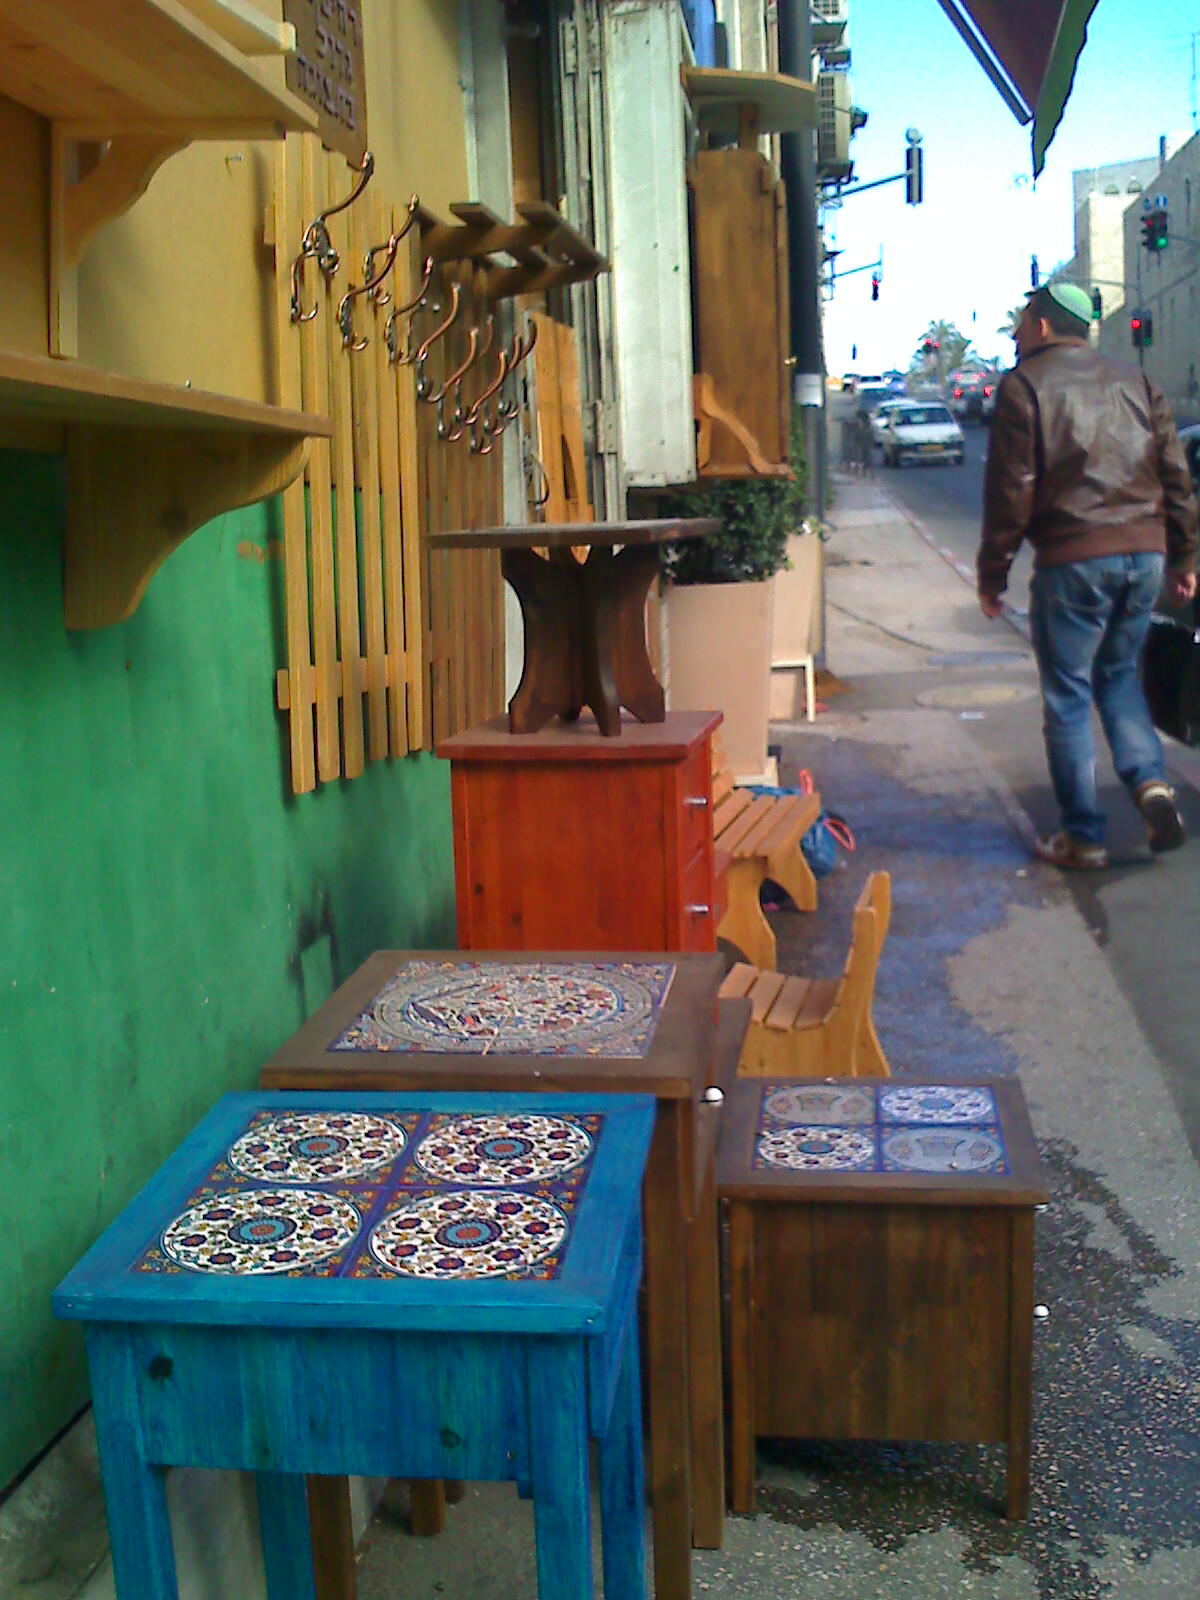 Middle eastern style furniture Ethnic Style Walked Past This Shop With Some Tables For Sale Out Side Around Hillel Street Really Like Middle East Style Furniture That Has Ceramic Tiles On Top Decoist Middle East Furniture Brit In Jerusalem